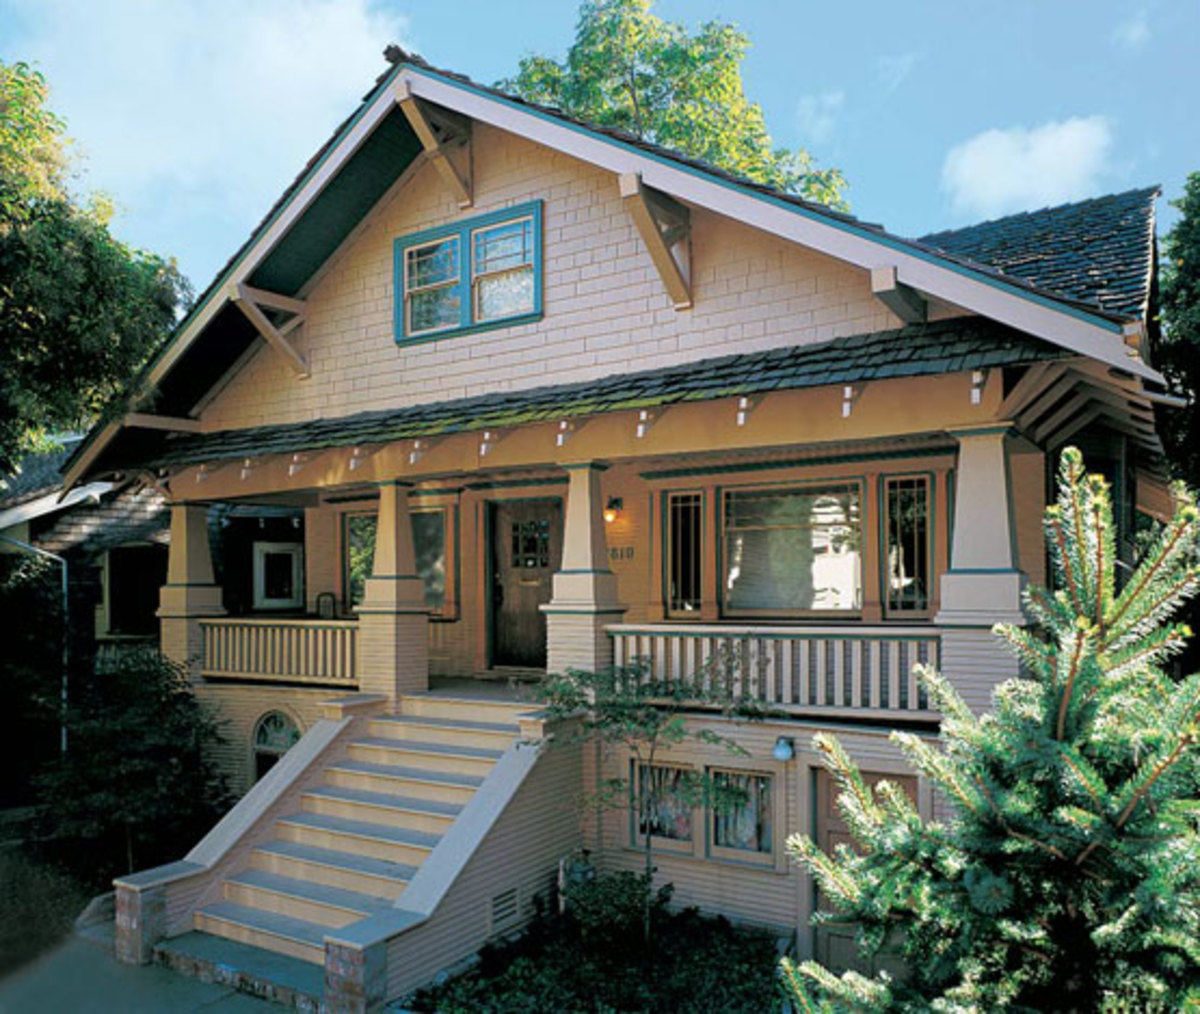 What Is A Bungalow Style Home: The Ultimate Guide To Arts & Crafts Craftsman Bungalows